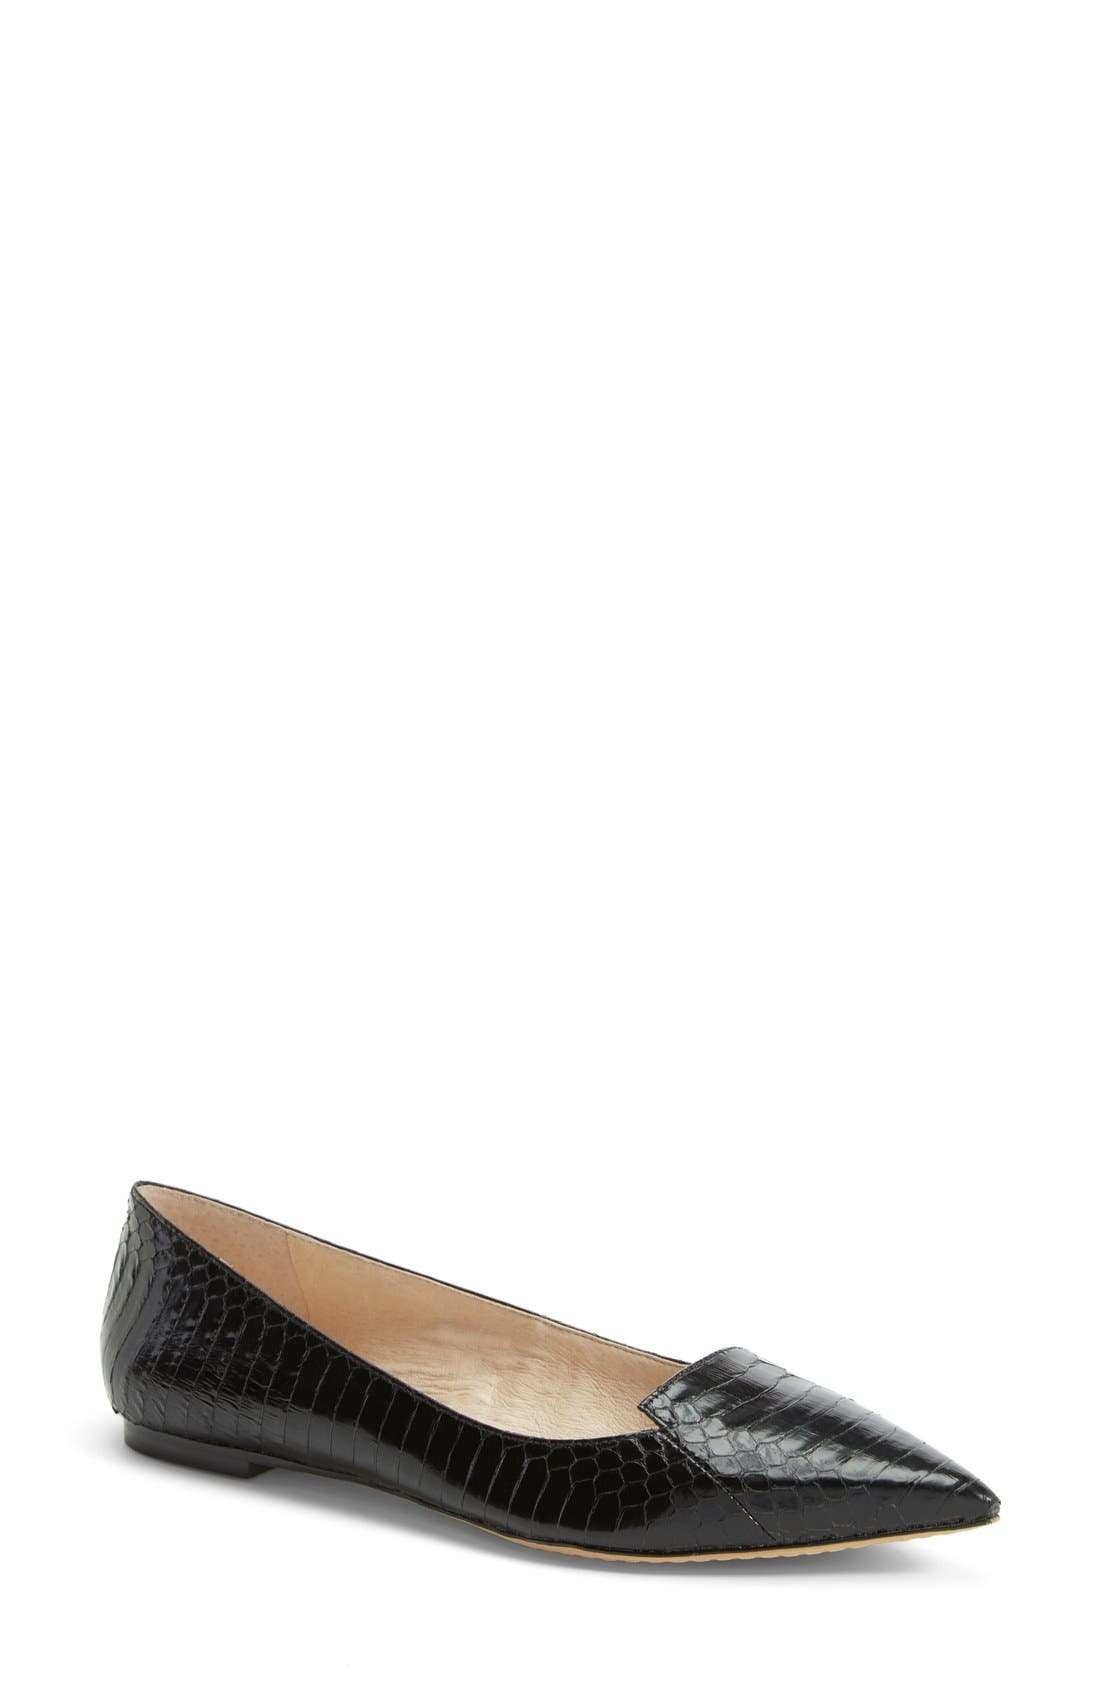 Alternate Image 1 Selected - Vince Camuto 'Empa' Pointy Toe Loafer Flat (Women) (Nordstrom Exclusive)